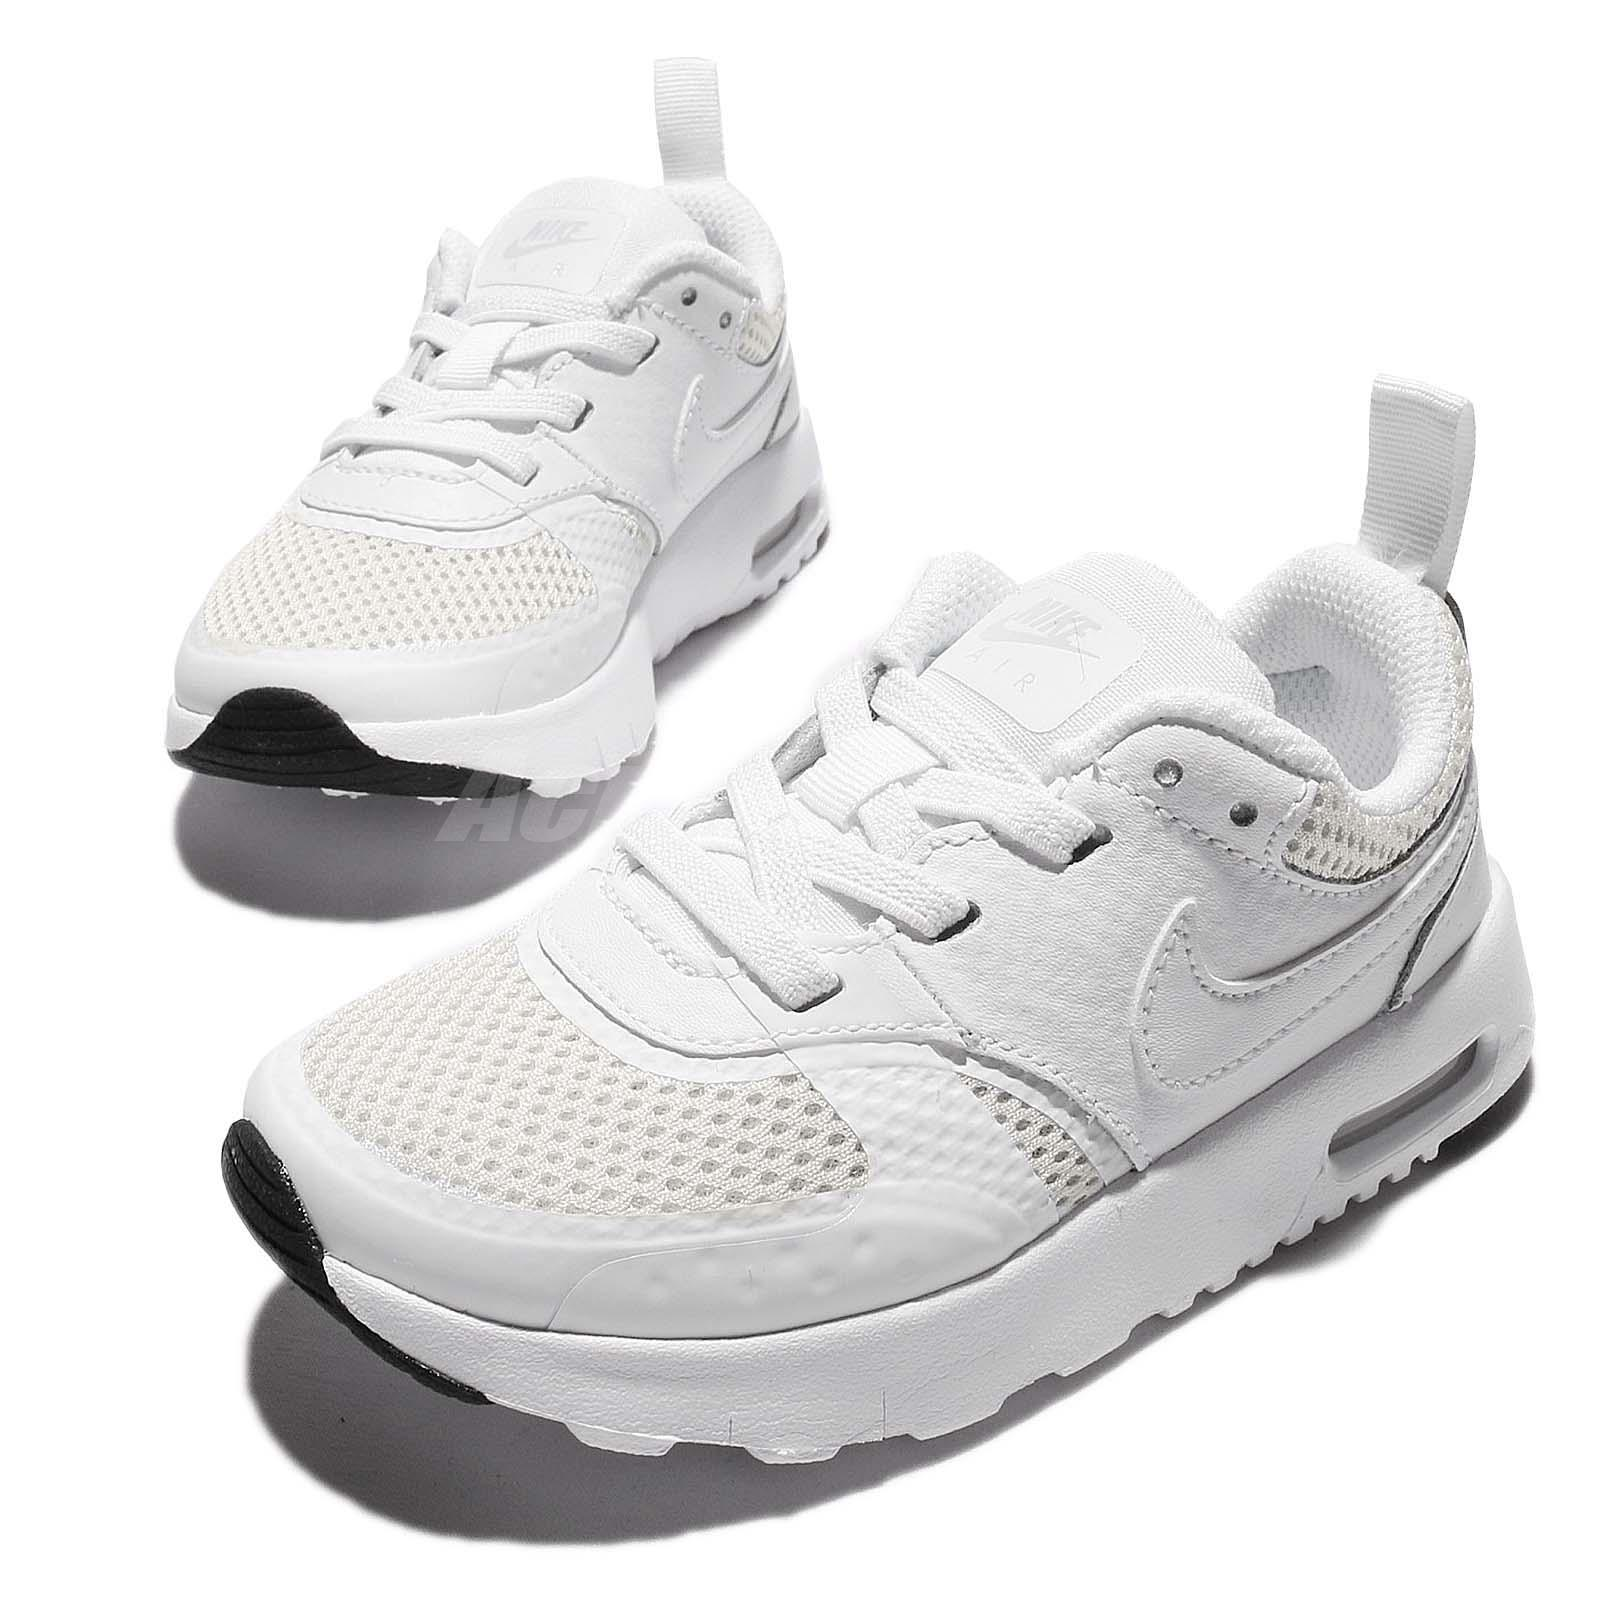 fd54f1d9dde Nike Air Max Vision TDE White Toddler Infant Baby Running Shoes ...